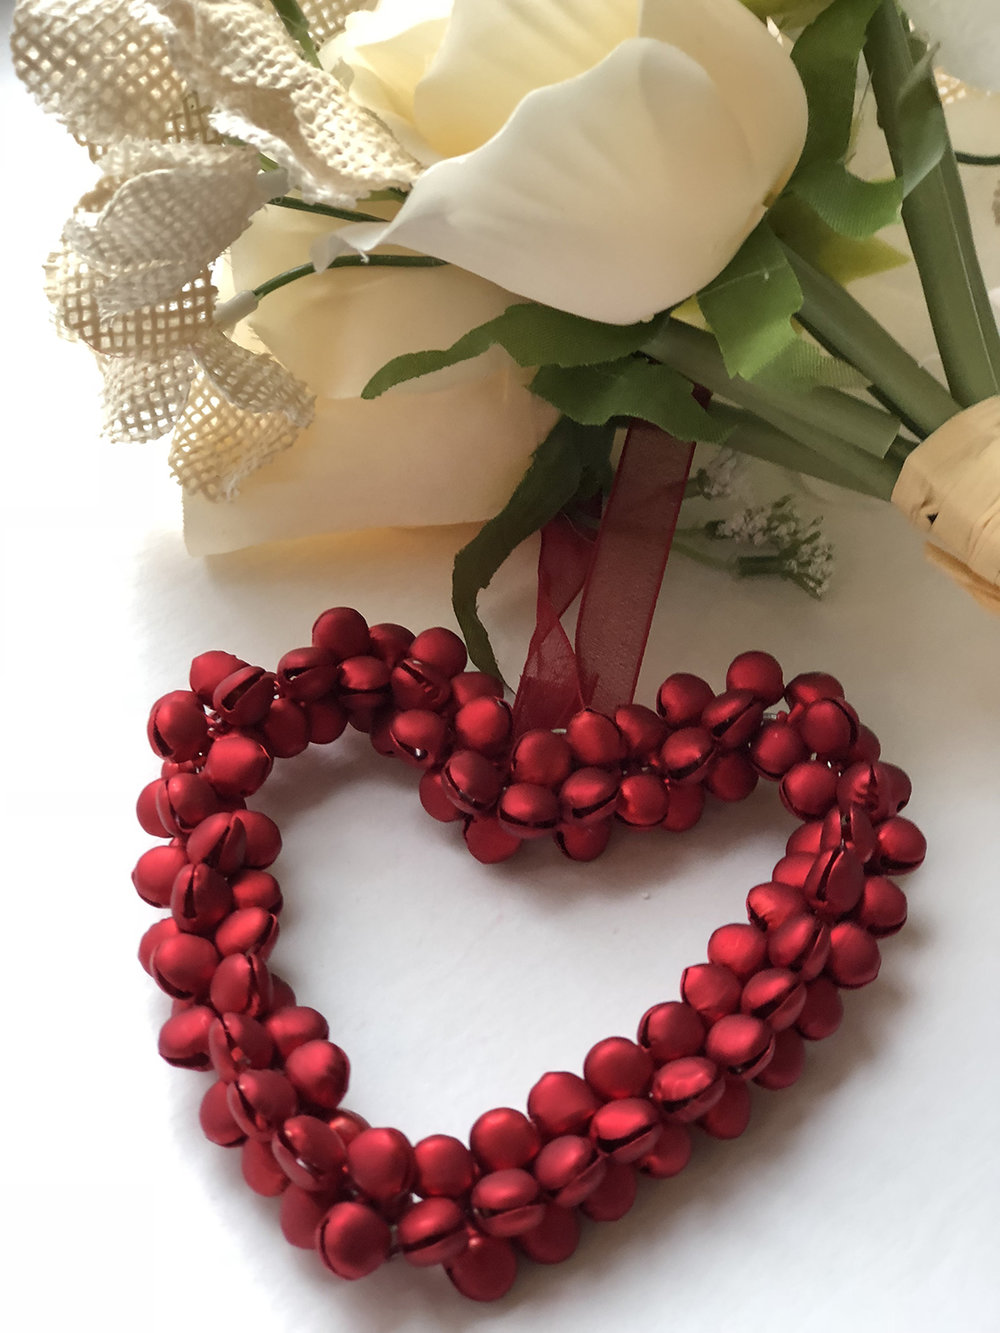 Red metal beads wired into a heart ornament